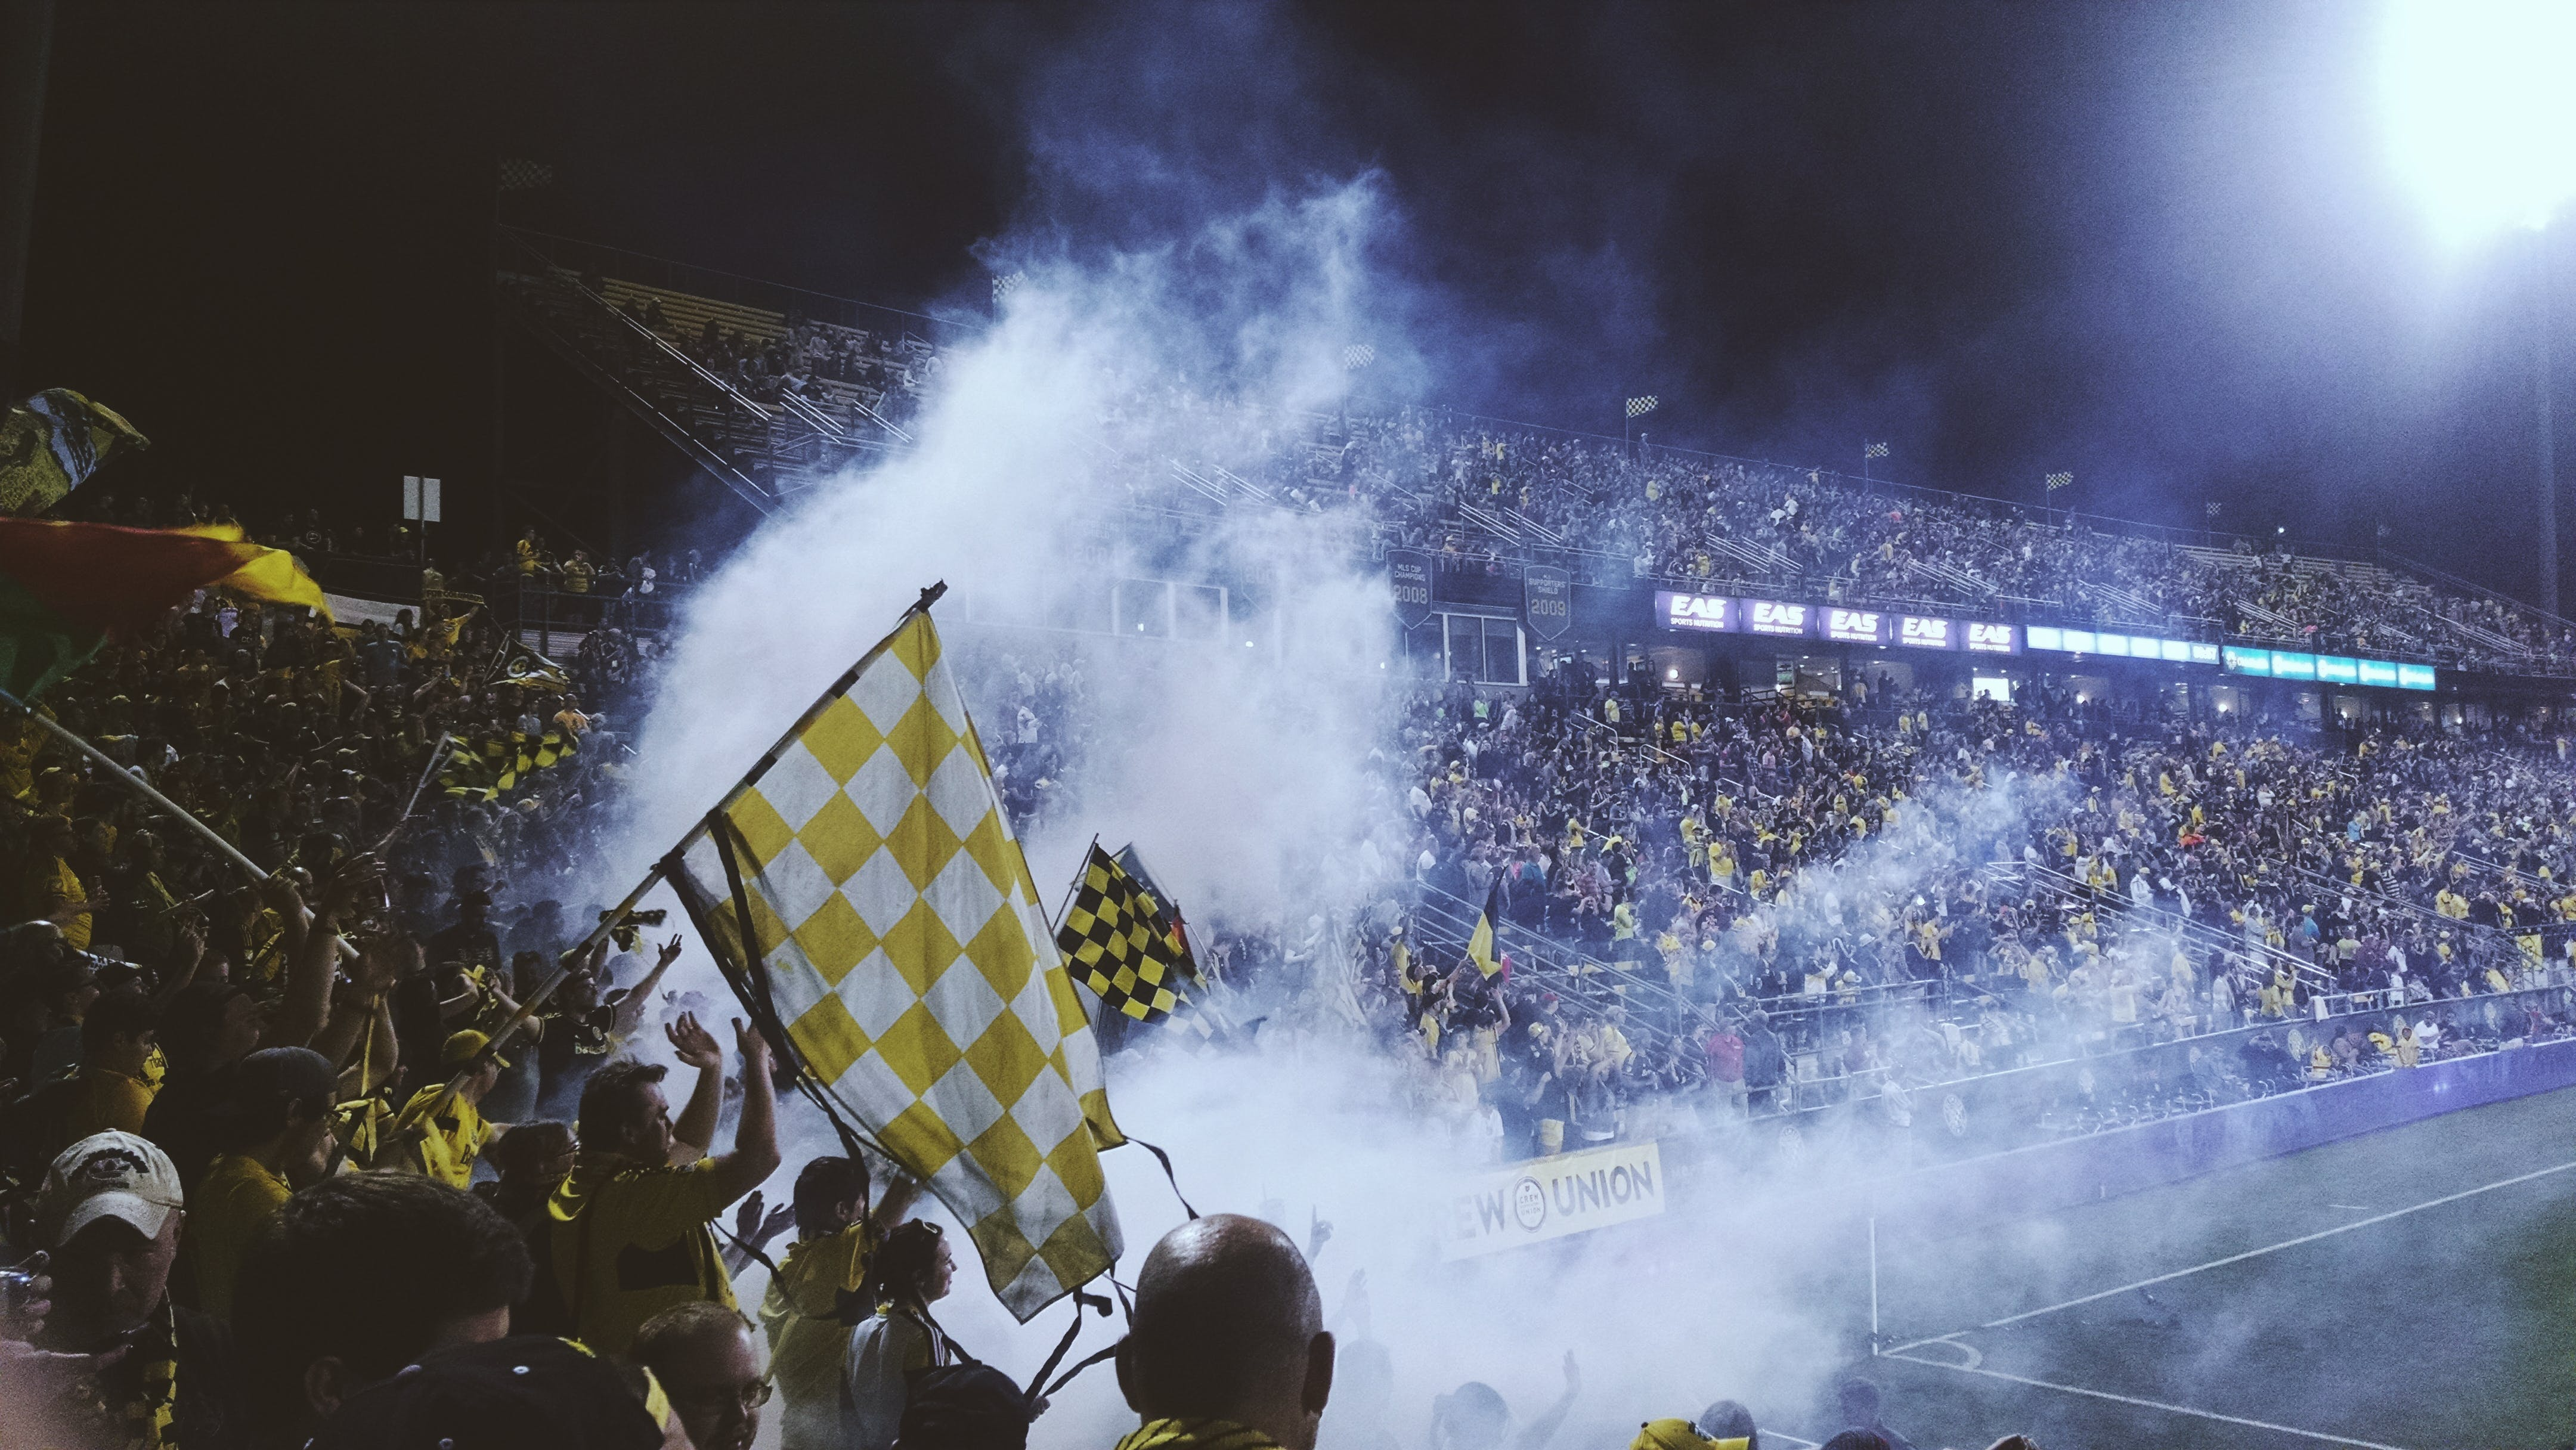 People in Stadium With Smoke at Night